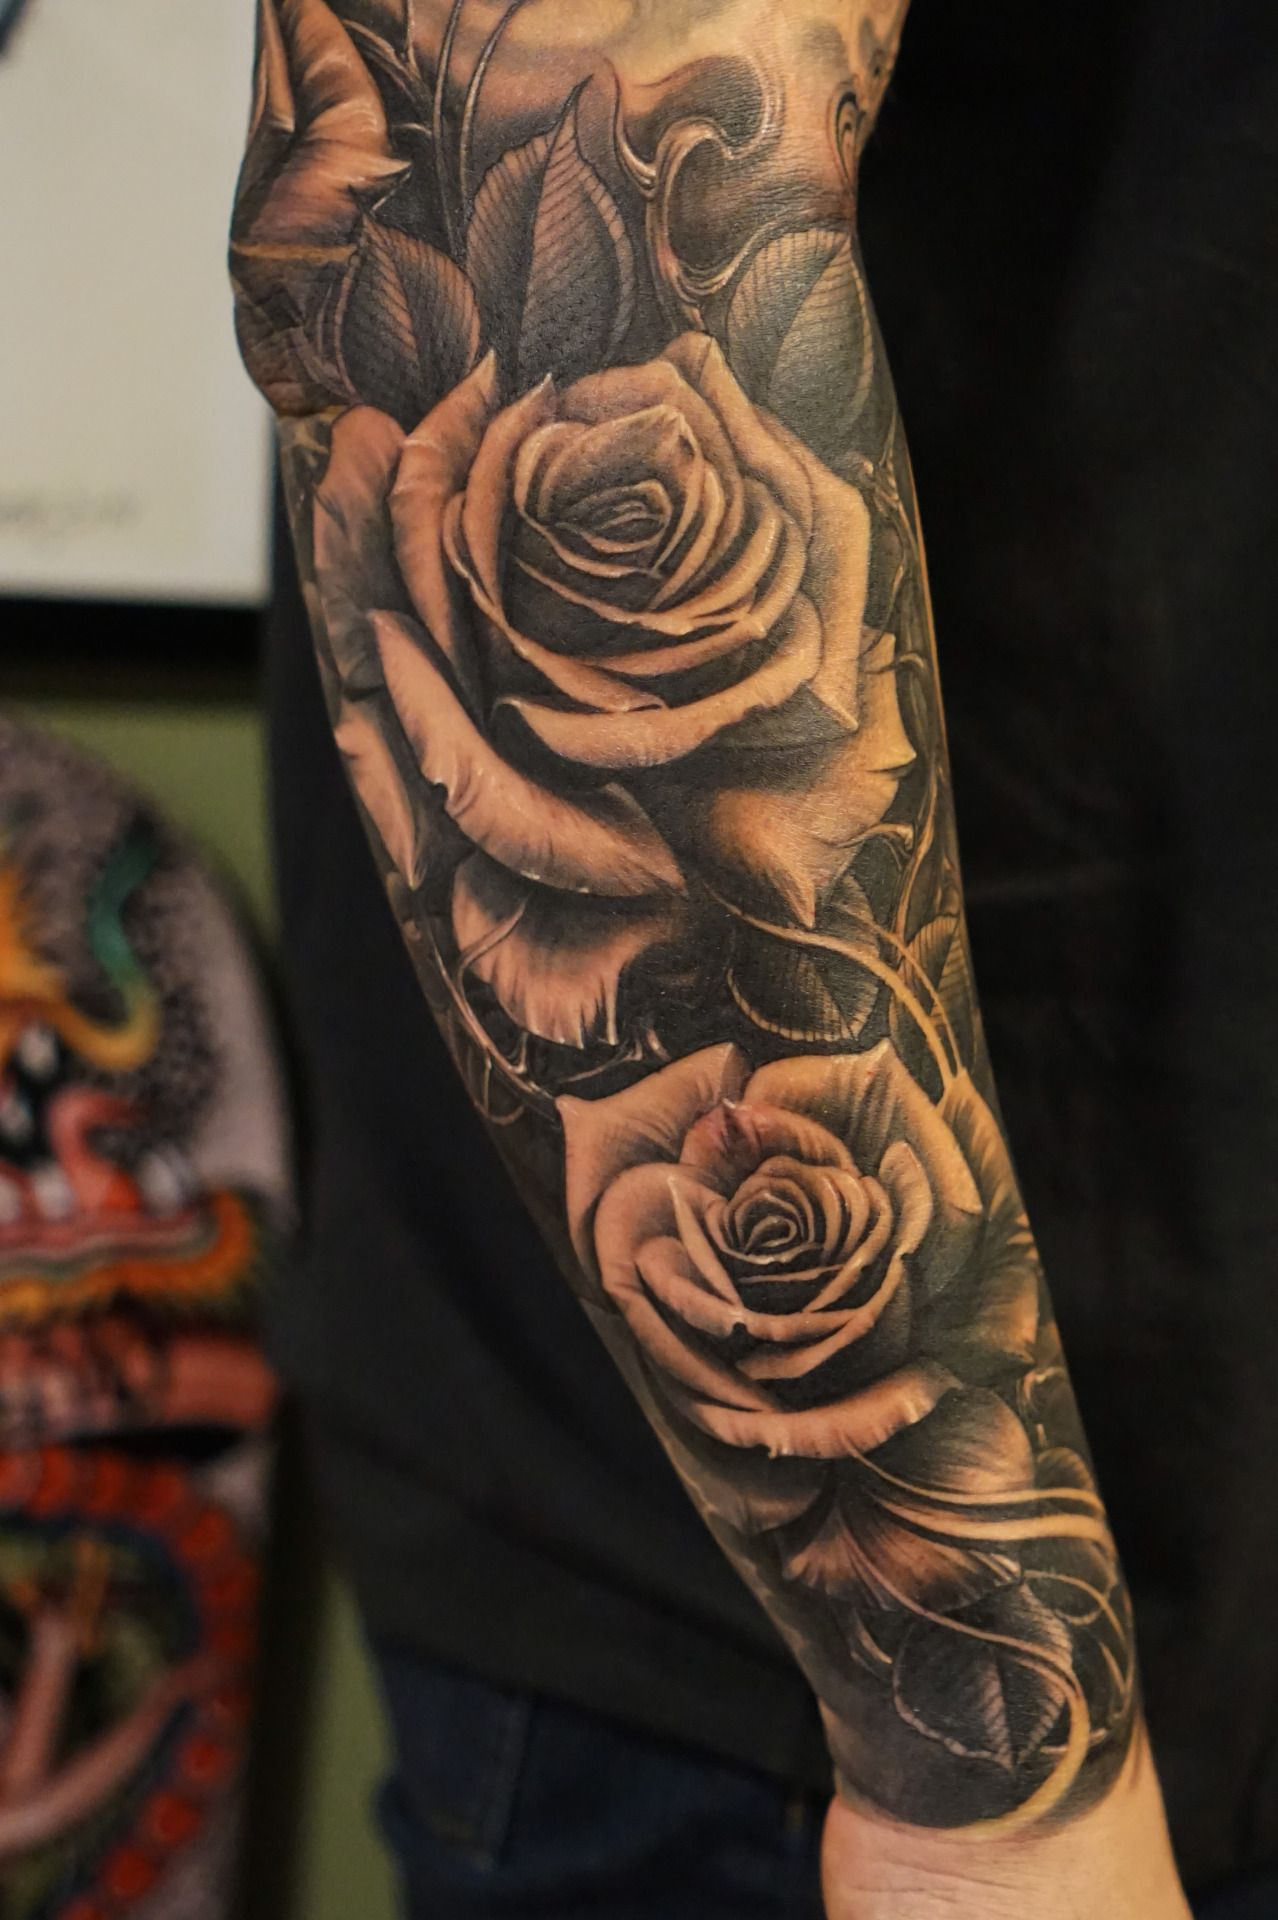 Clock forearm black rose sleeve tattoo - I Ve Always Been Amazed About Rose Tattoos I Love The Way They Look And How Detailed They Are And What You Can Put With It In A Sleeve Like Clocks Or